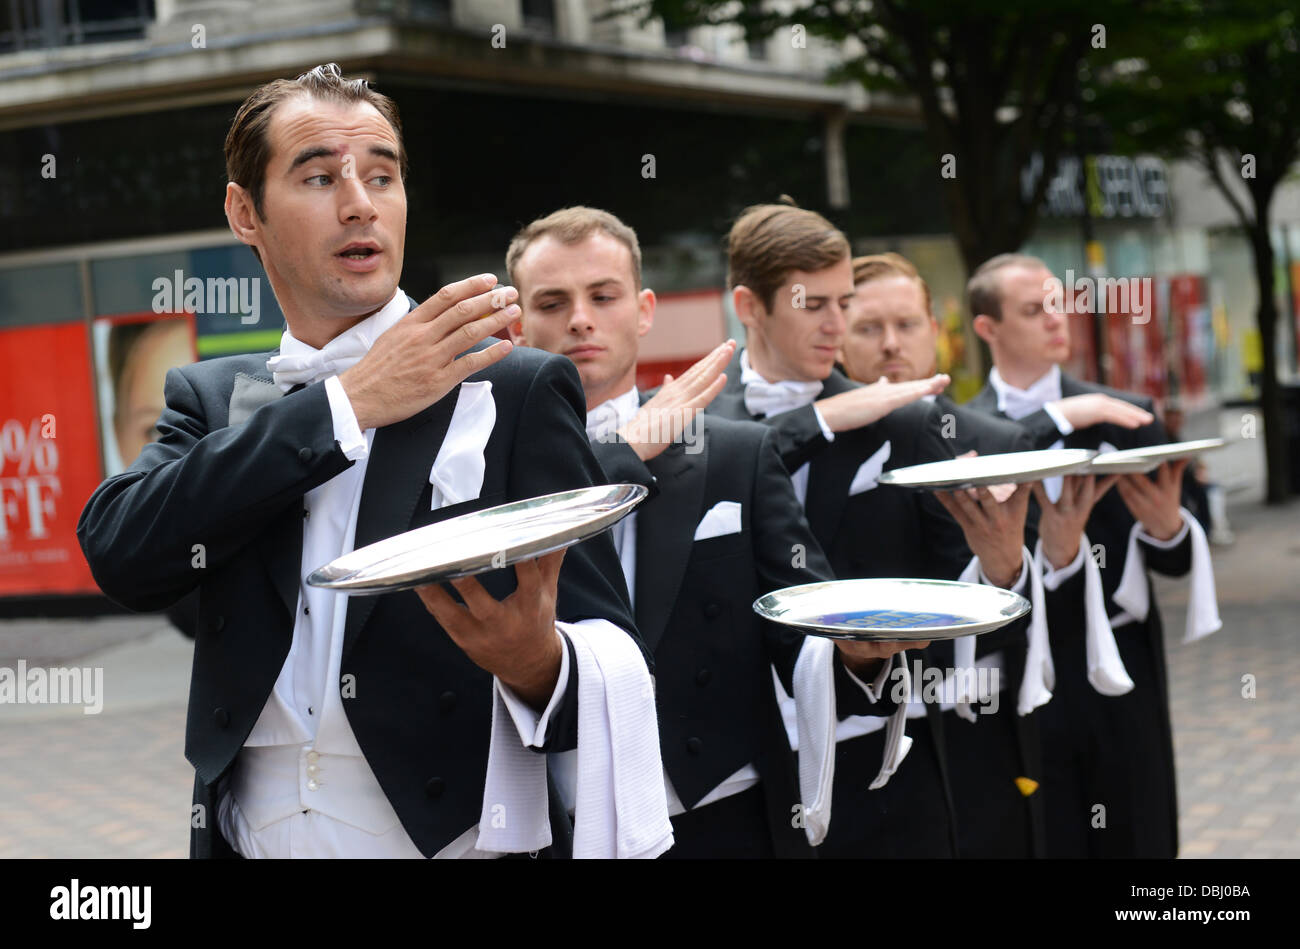 Butlers on parade promoting Euro Millions lottery posed by male models - Stock Image